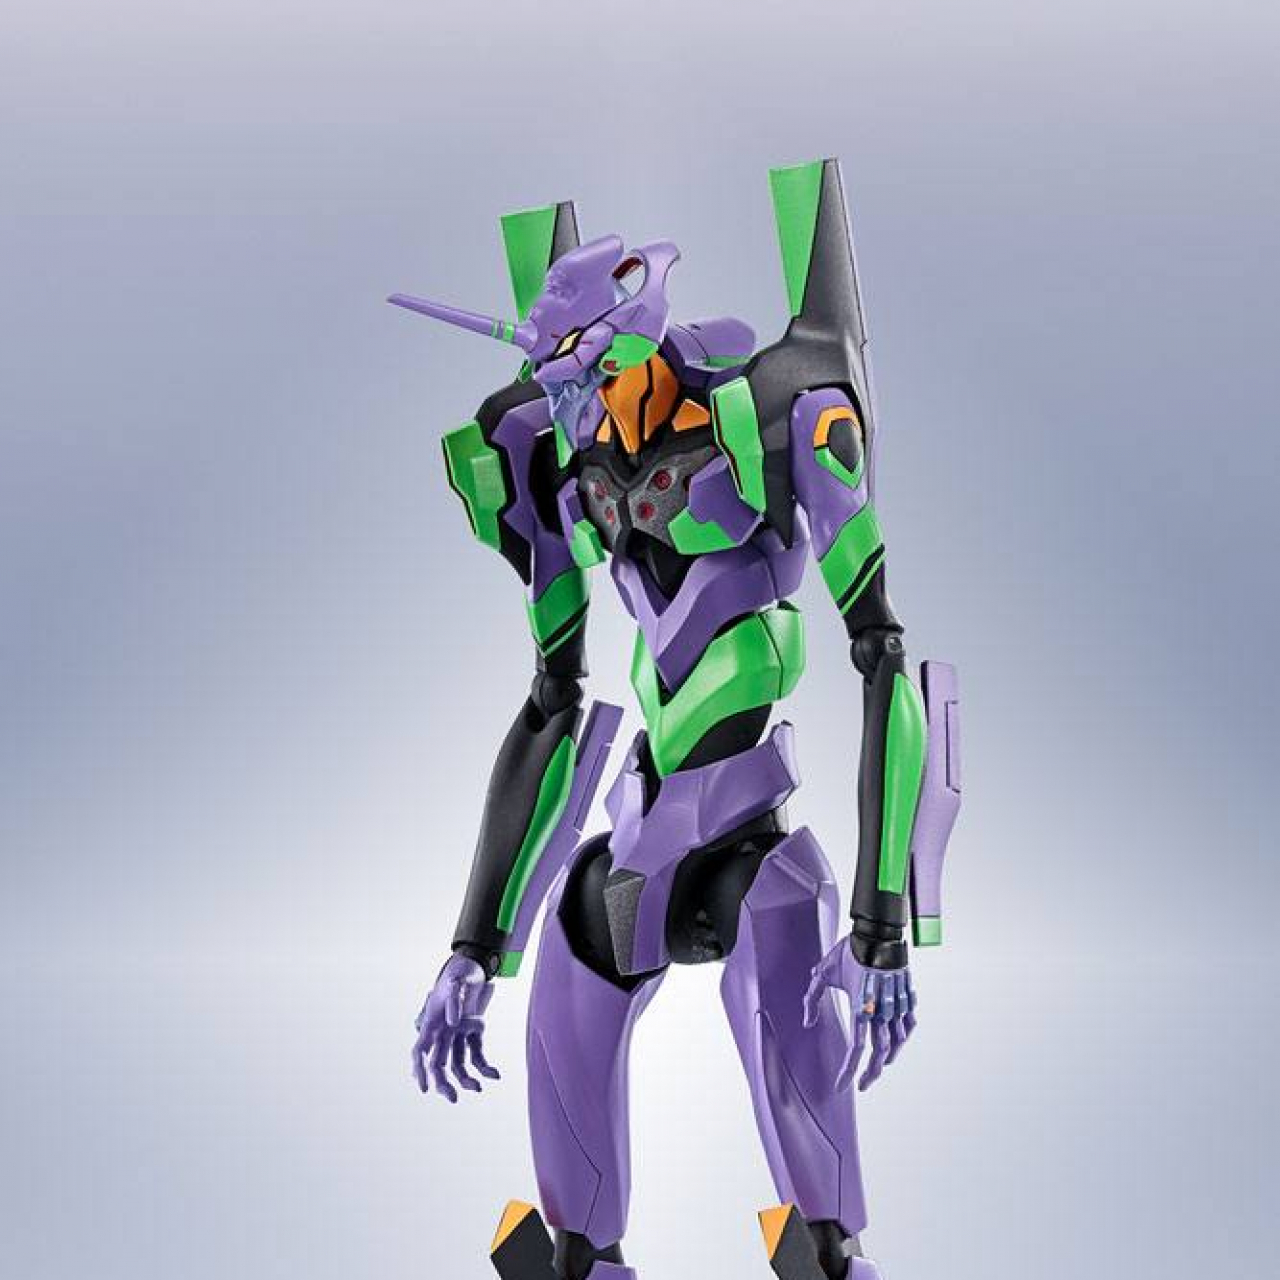 Rebuild of Evangelion Robot Spirits Action Figure Evangelion EVA-01 Test Type 17 cm